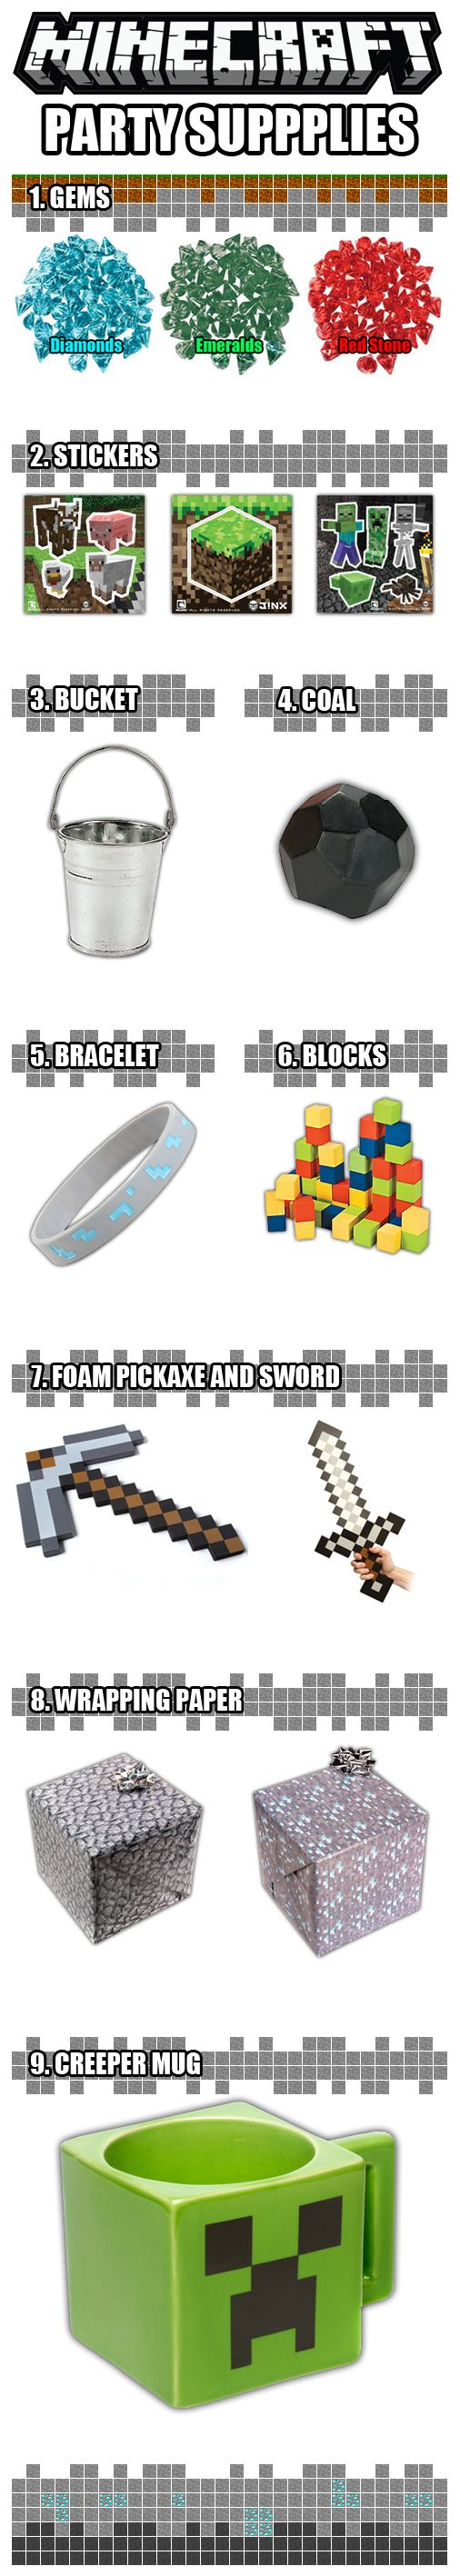 9 Minecraft Party Supplies to Help Build the Perfect Minecraft Birthday!